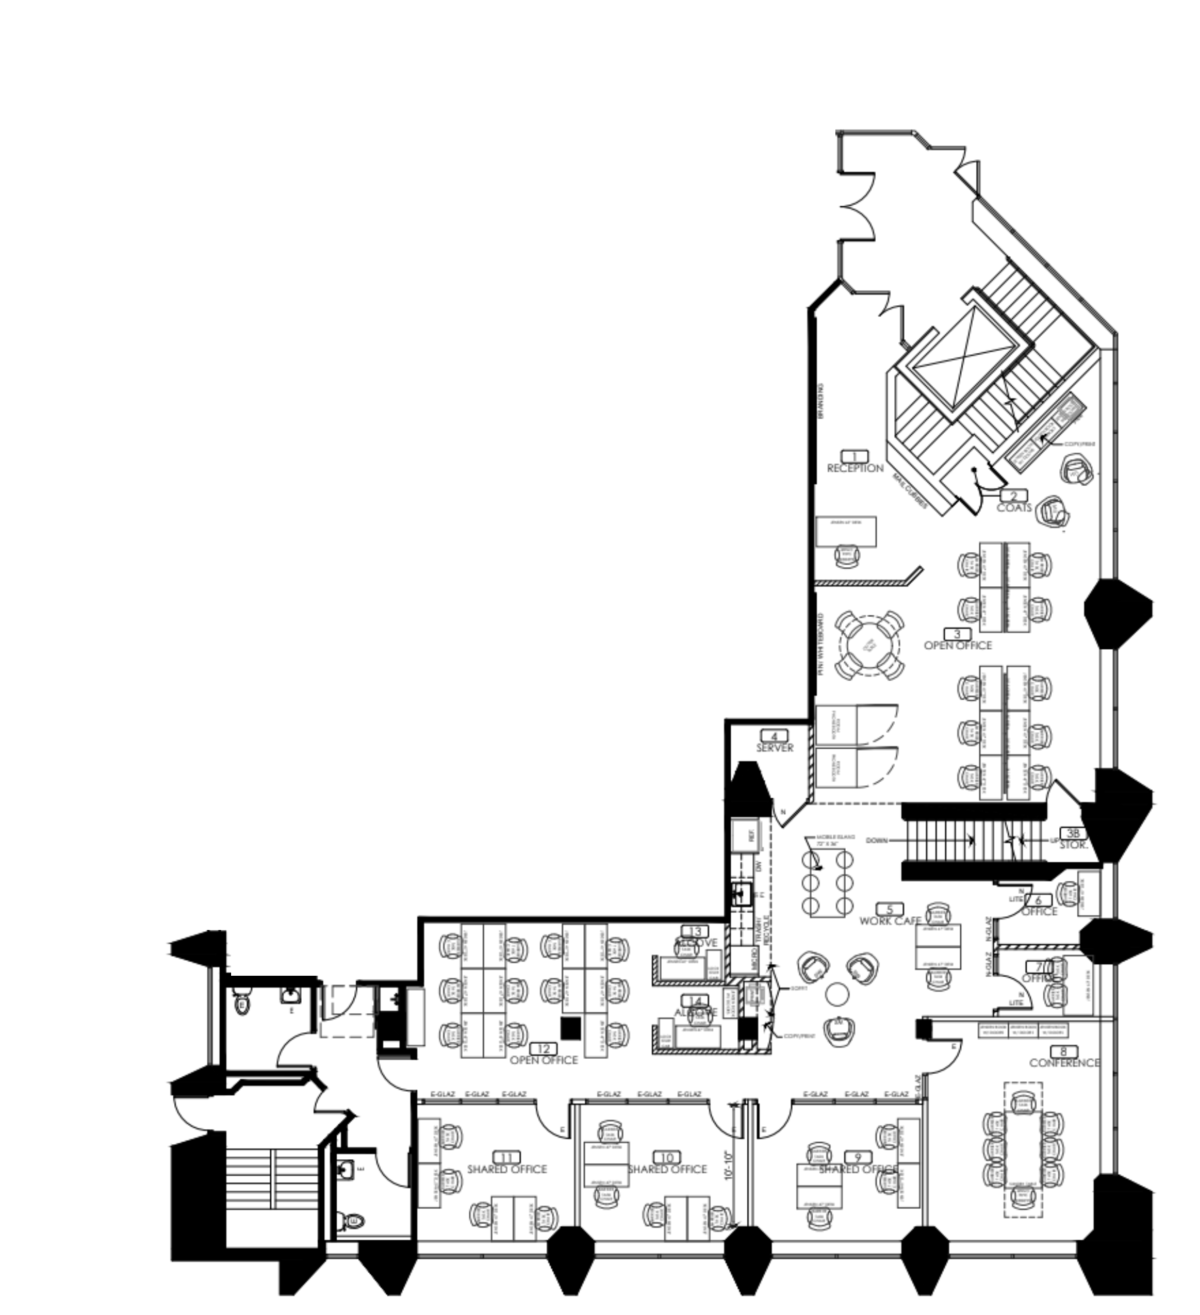 Curated Co Floor Plan 19.12.11